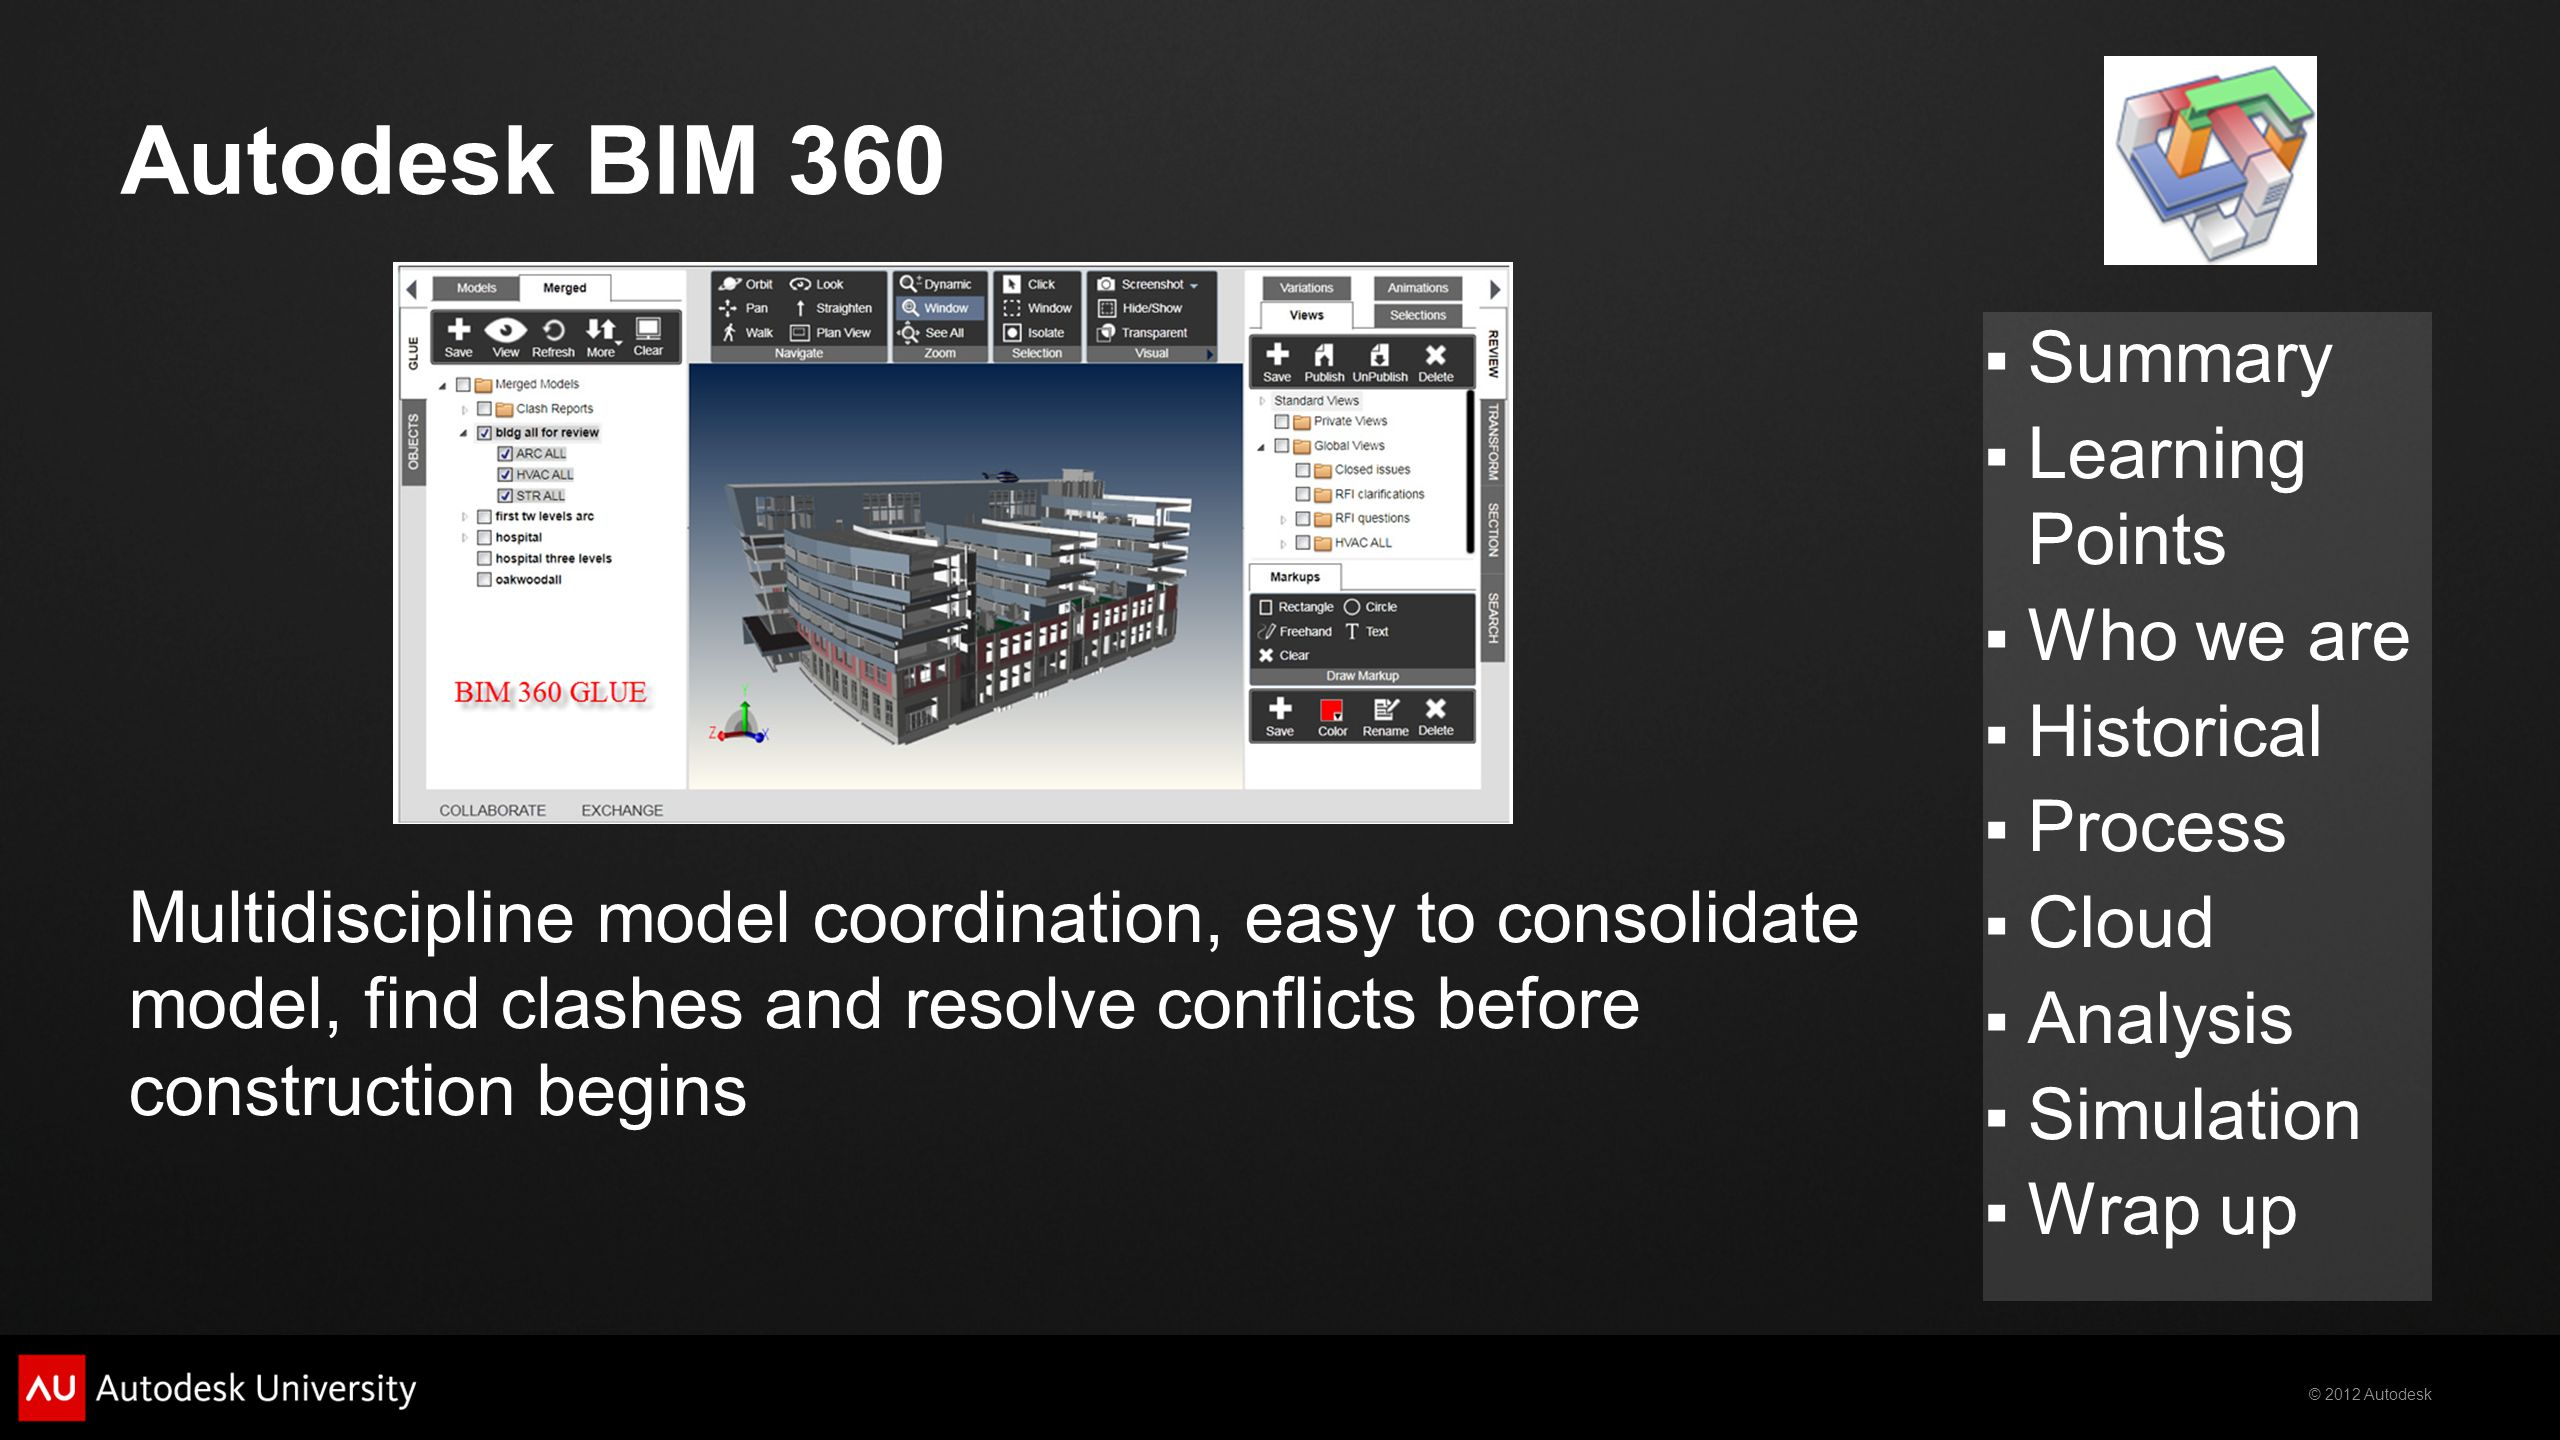 © 2012 Autodesk  Summary  Learning Points  Who we are  Historical  Process  Cloud  Analysis  Simulation  Wrap up Autodesk BIM 360 Multidiscipline model coordination, easy to consolidate model, find clashes and resolve conflicts before construction begins